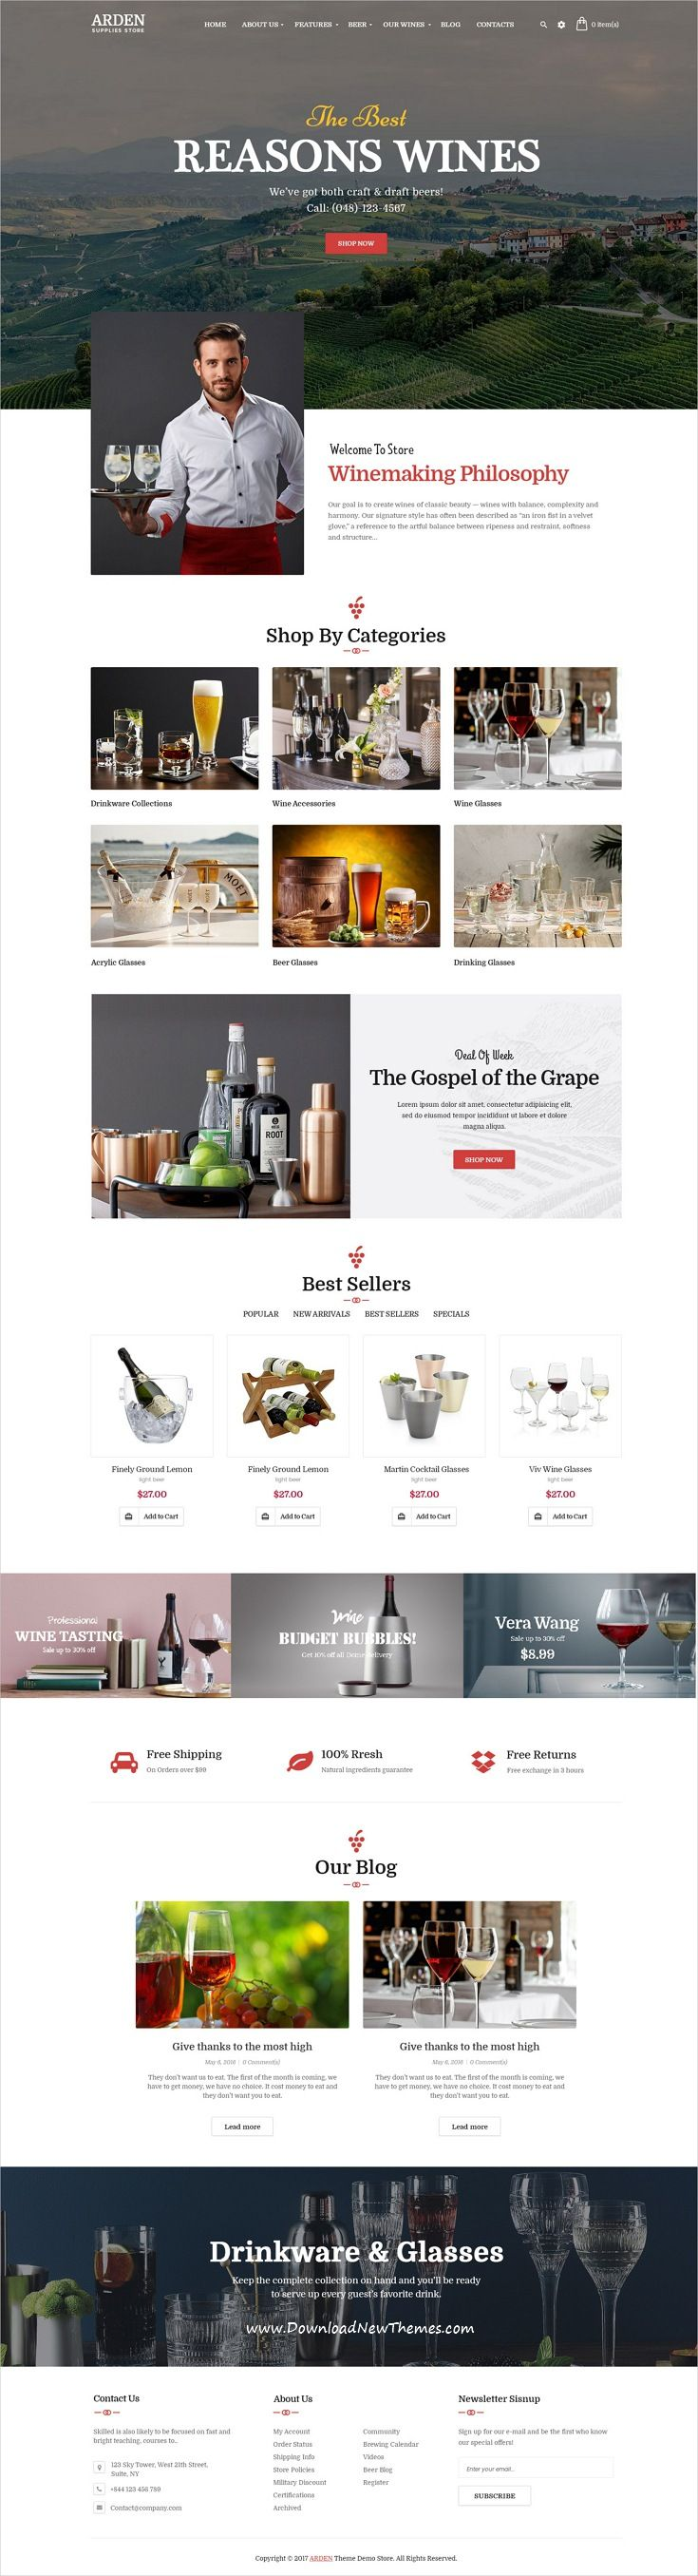 Arden is clean and modern design 5in1 responsive WooCommerce #WordPress theme for  brewery, liquor and #wine supplies store #eCommerce website click on theimage to download now.